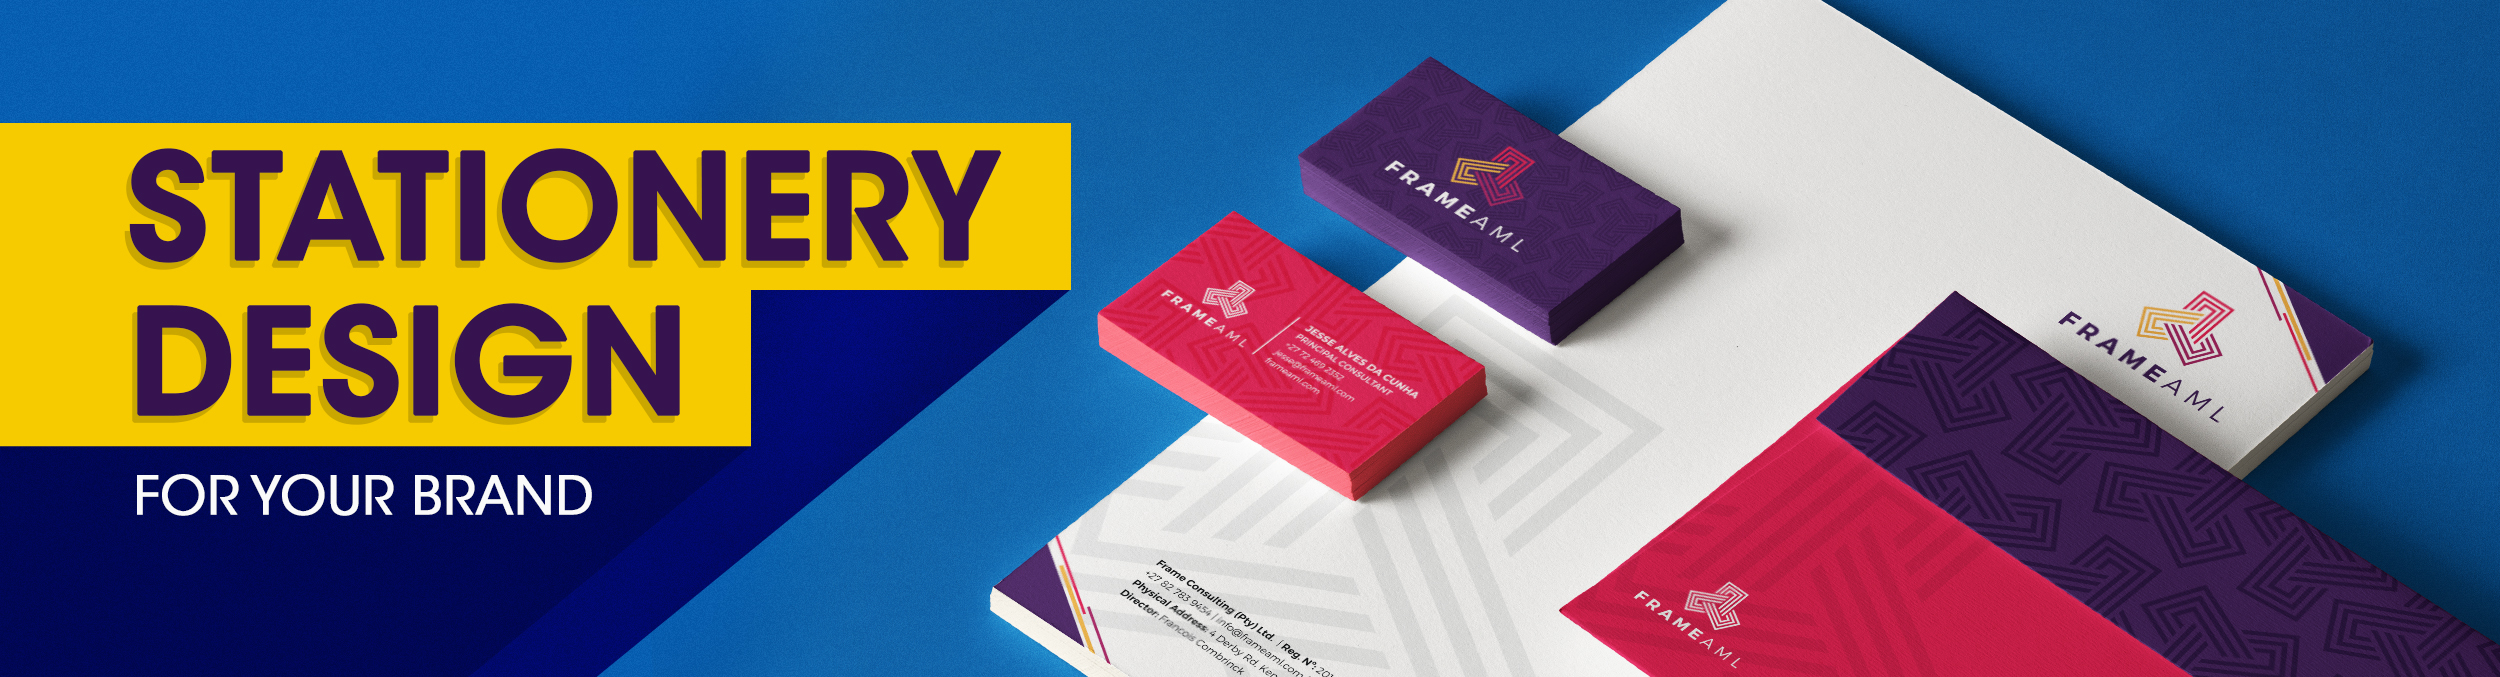 Corporate Stationery Designers Agency in Johannesburg